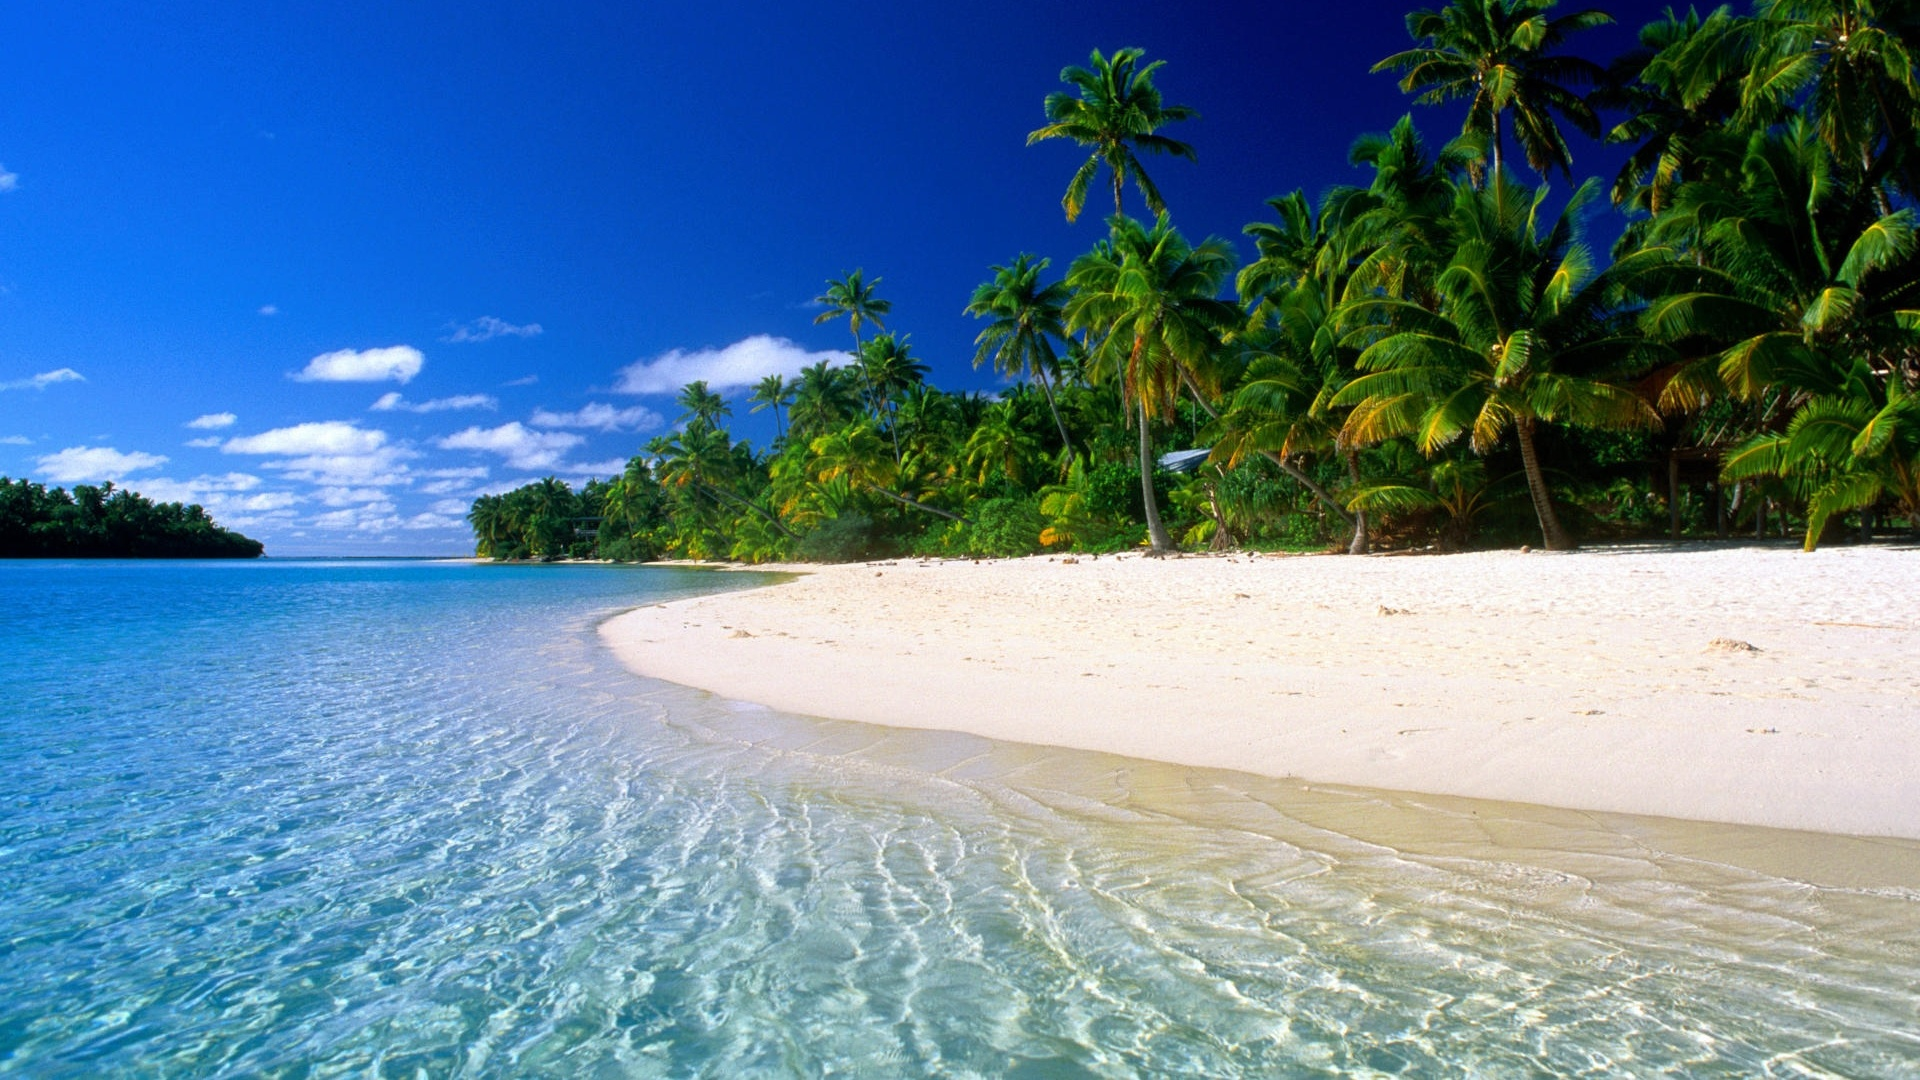 Beautiful Beach Wallpapers Hd for Desktop 1920x1080px